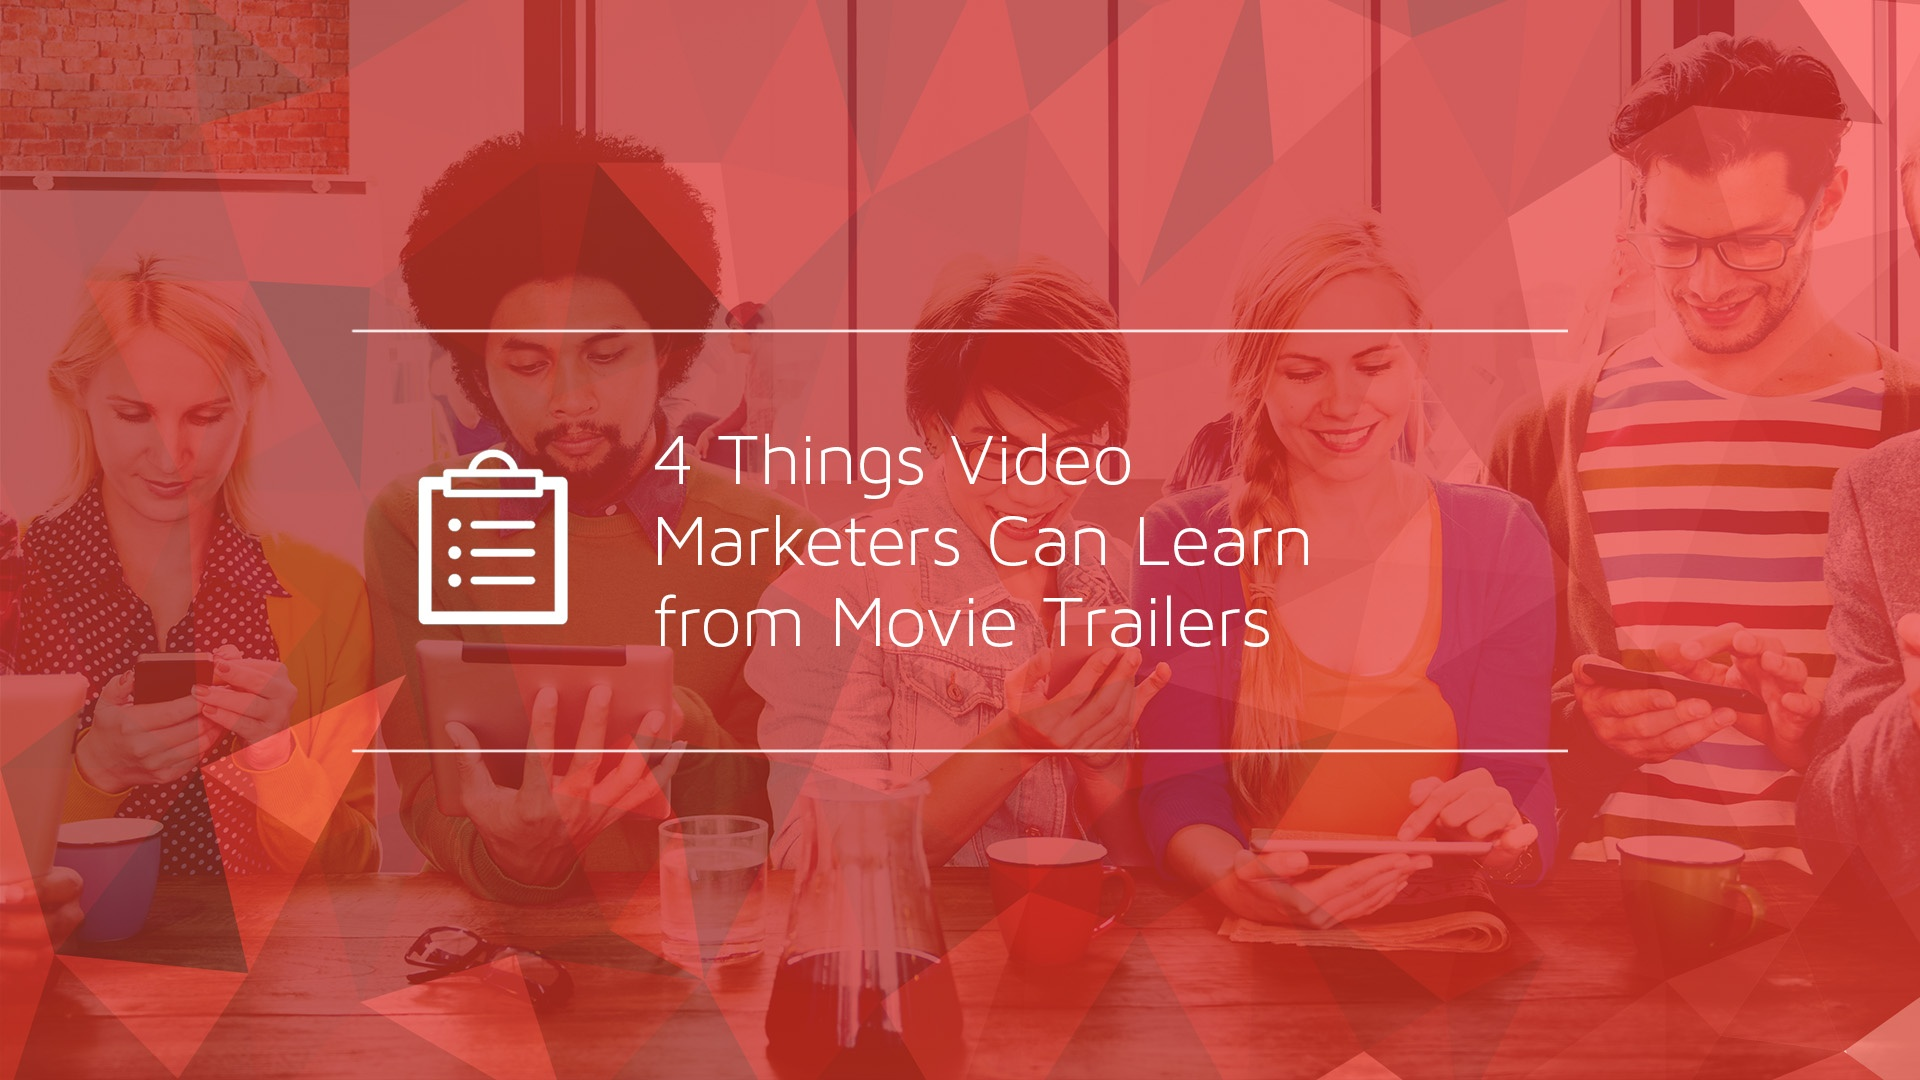 4 Things Video Marketers Can Learn from Movie Trailers .jpg